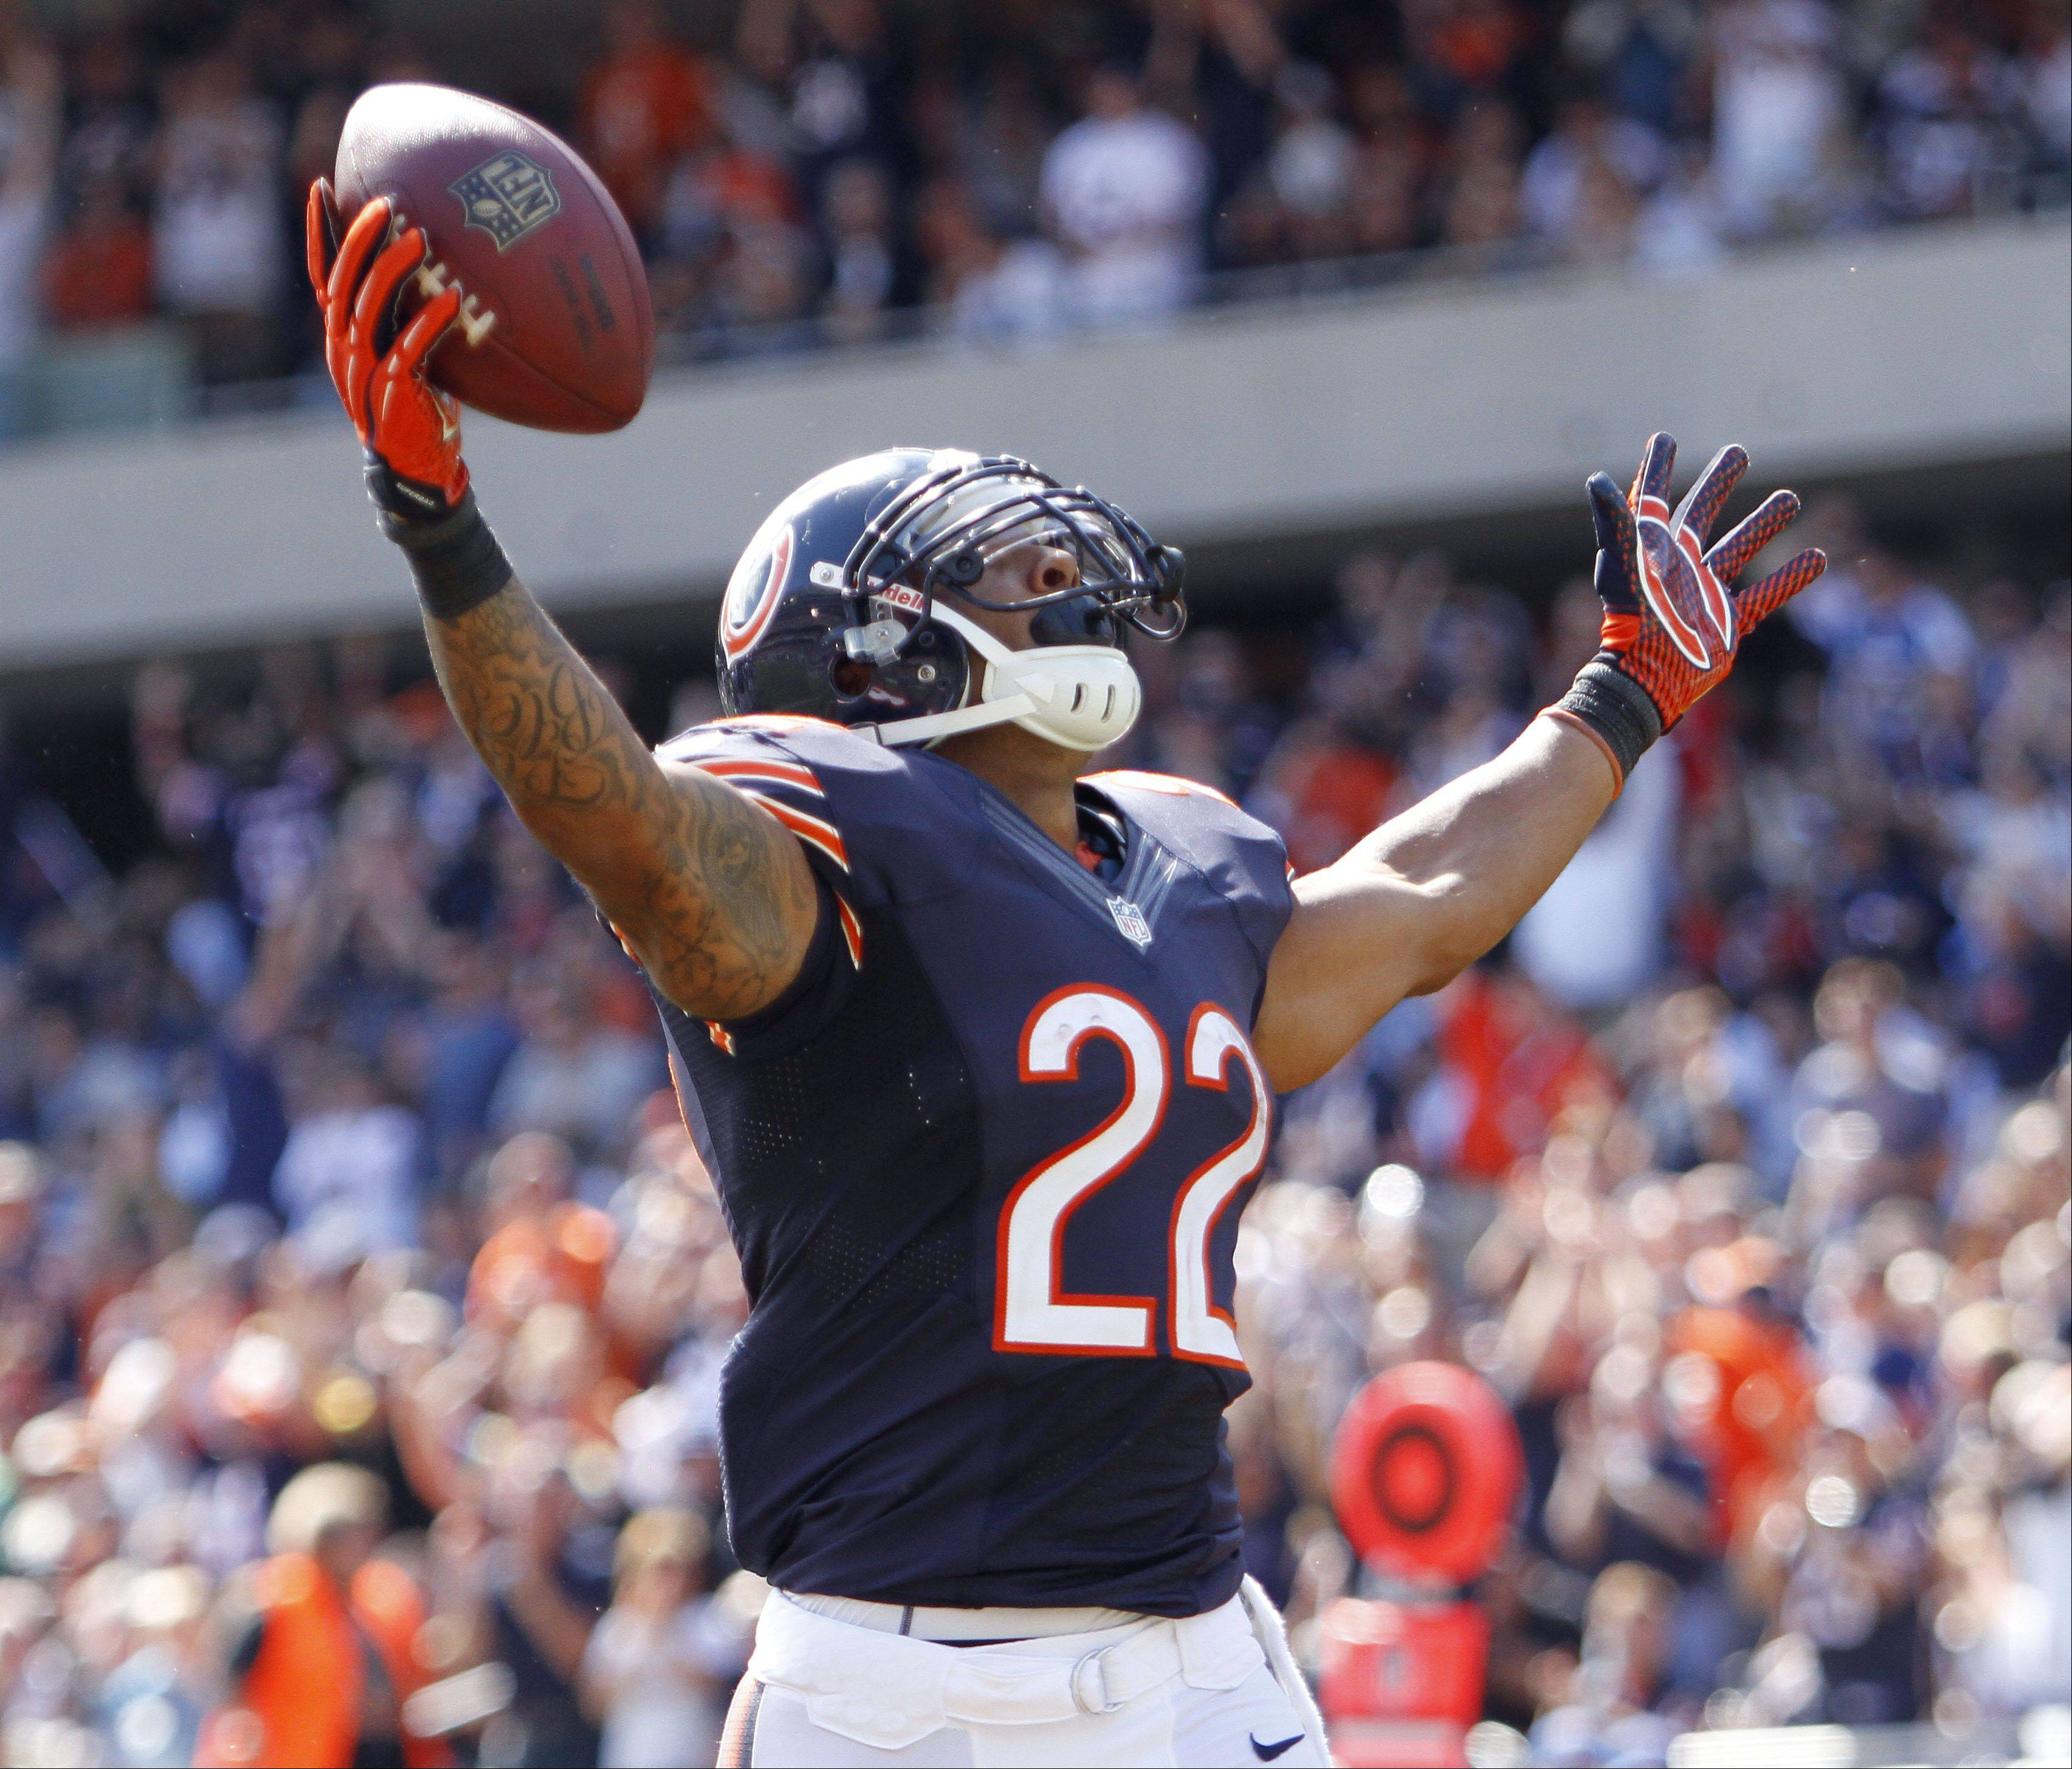 Chicago Bears running back Matt Forte celebrates after his 3rd quarter touchdown during the Bears season opener against the Indianapolis Colts Sunday at Soldier Field in Chicago. The Bears won 41-21